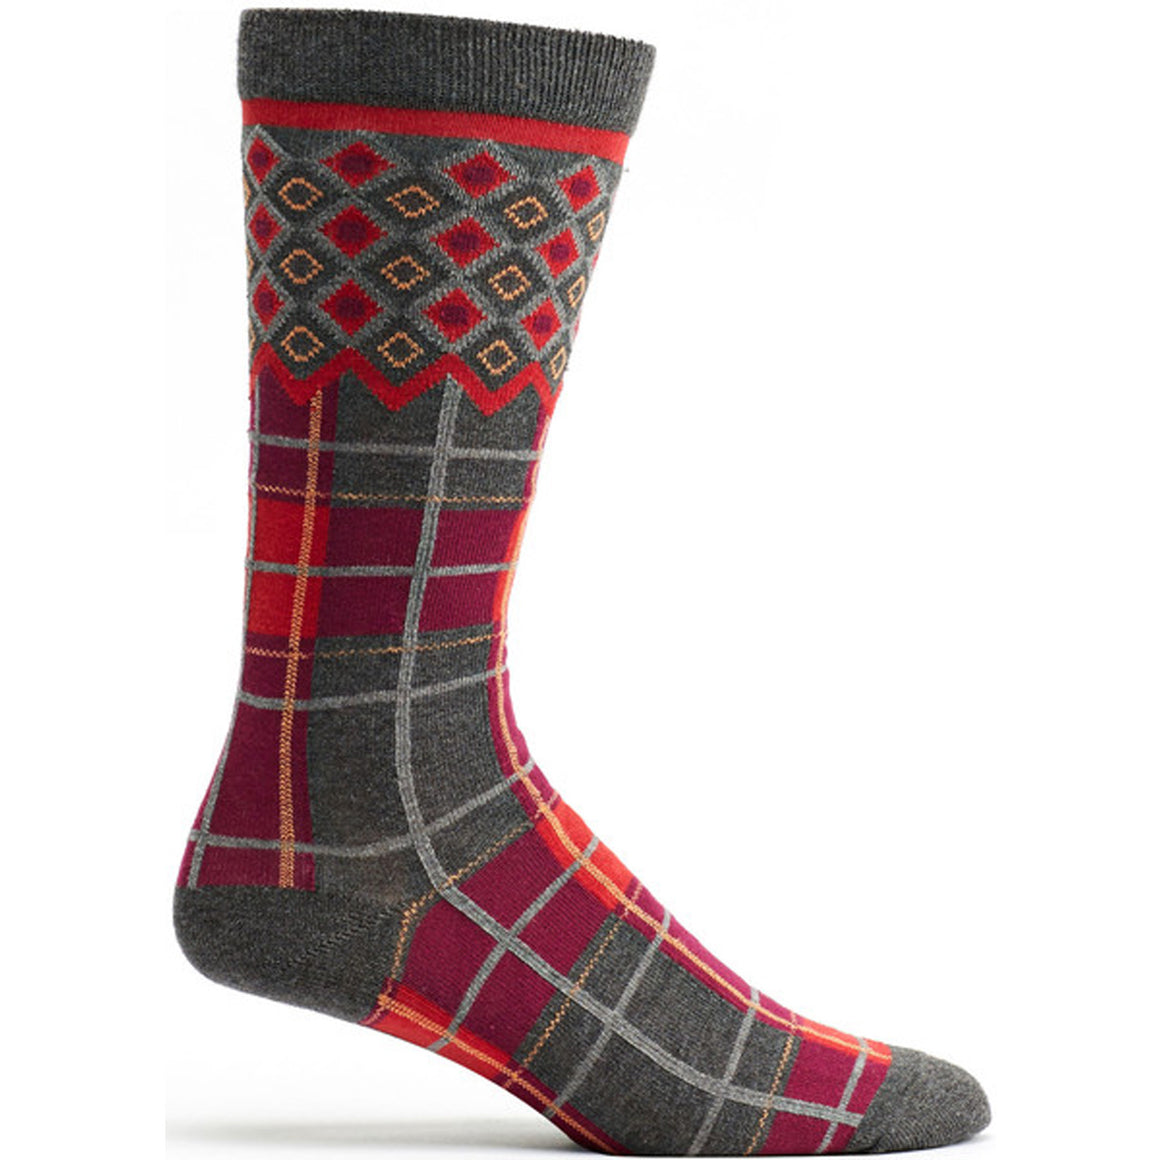 Laith Plaid Sock in Grey size 10-13 mens from ozone socks